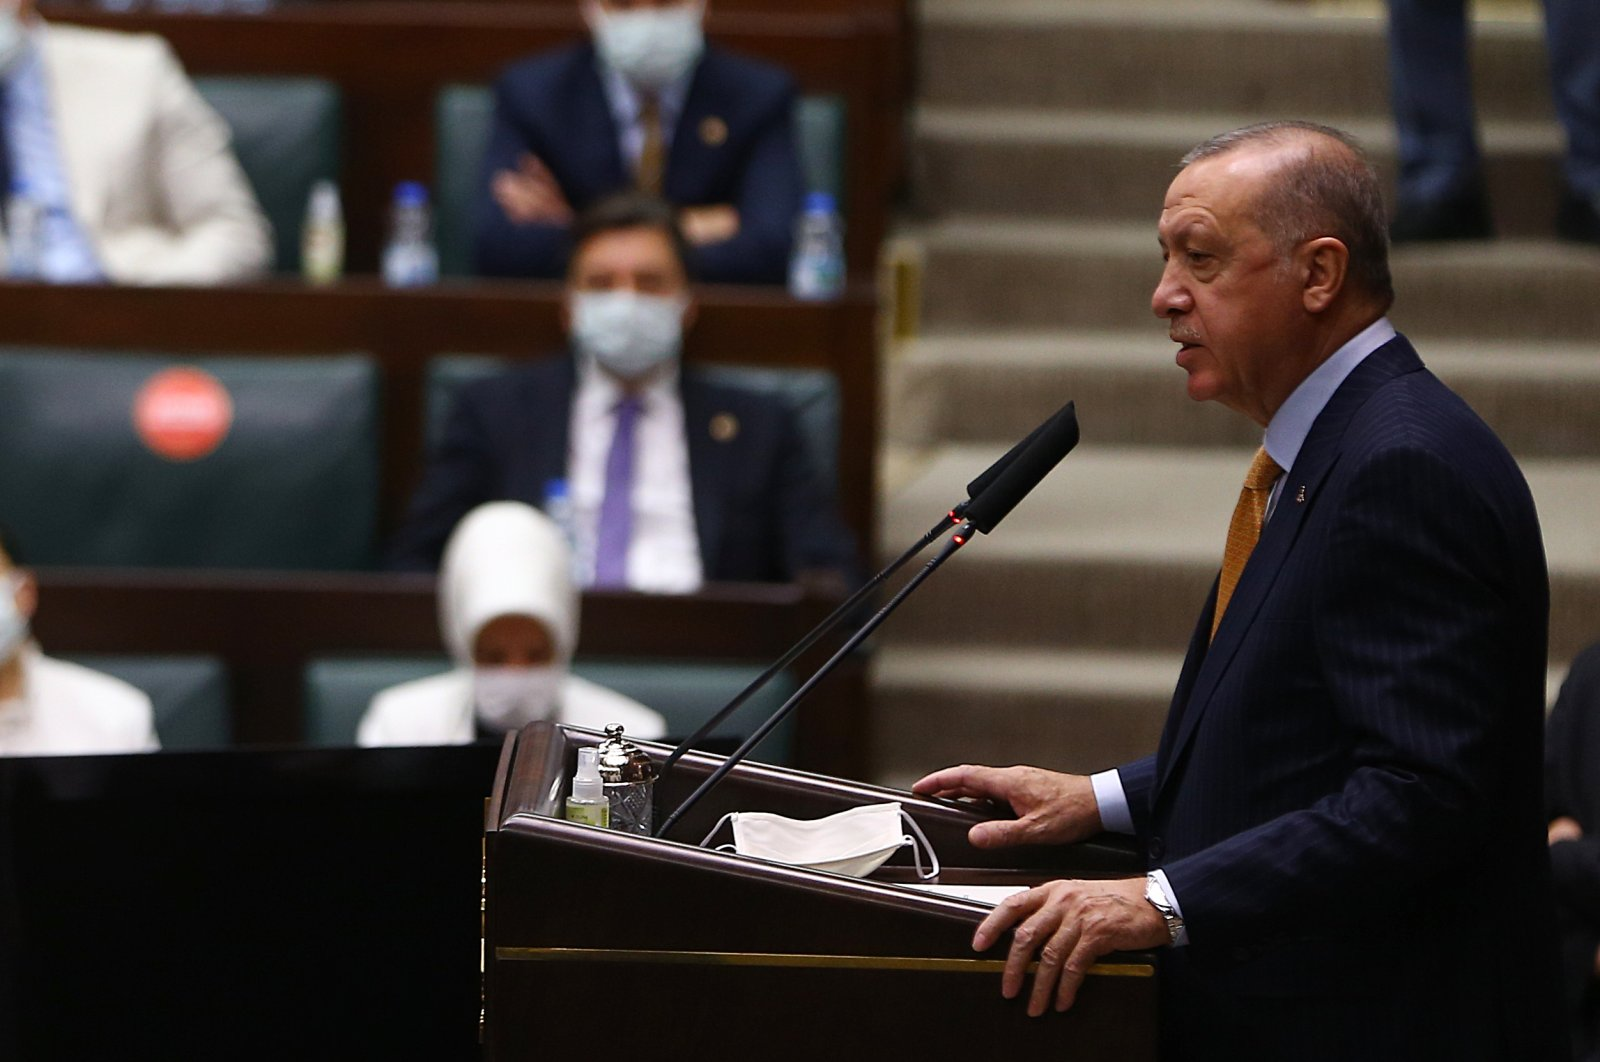 President Recep Tayyip Erdoğan gives a speech at the Justice and Development Party (AK Party) parliamentary group meeting in Ankara, Turkey, Oct. 28, 2020. (AA Photo)